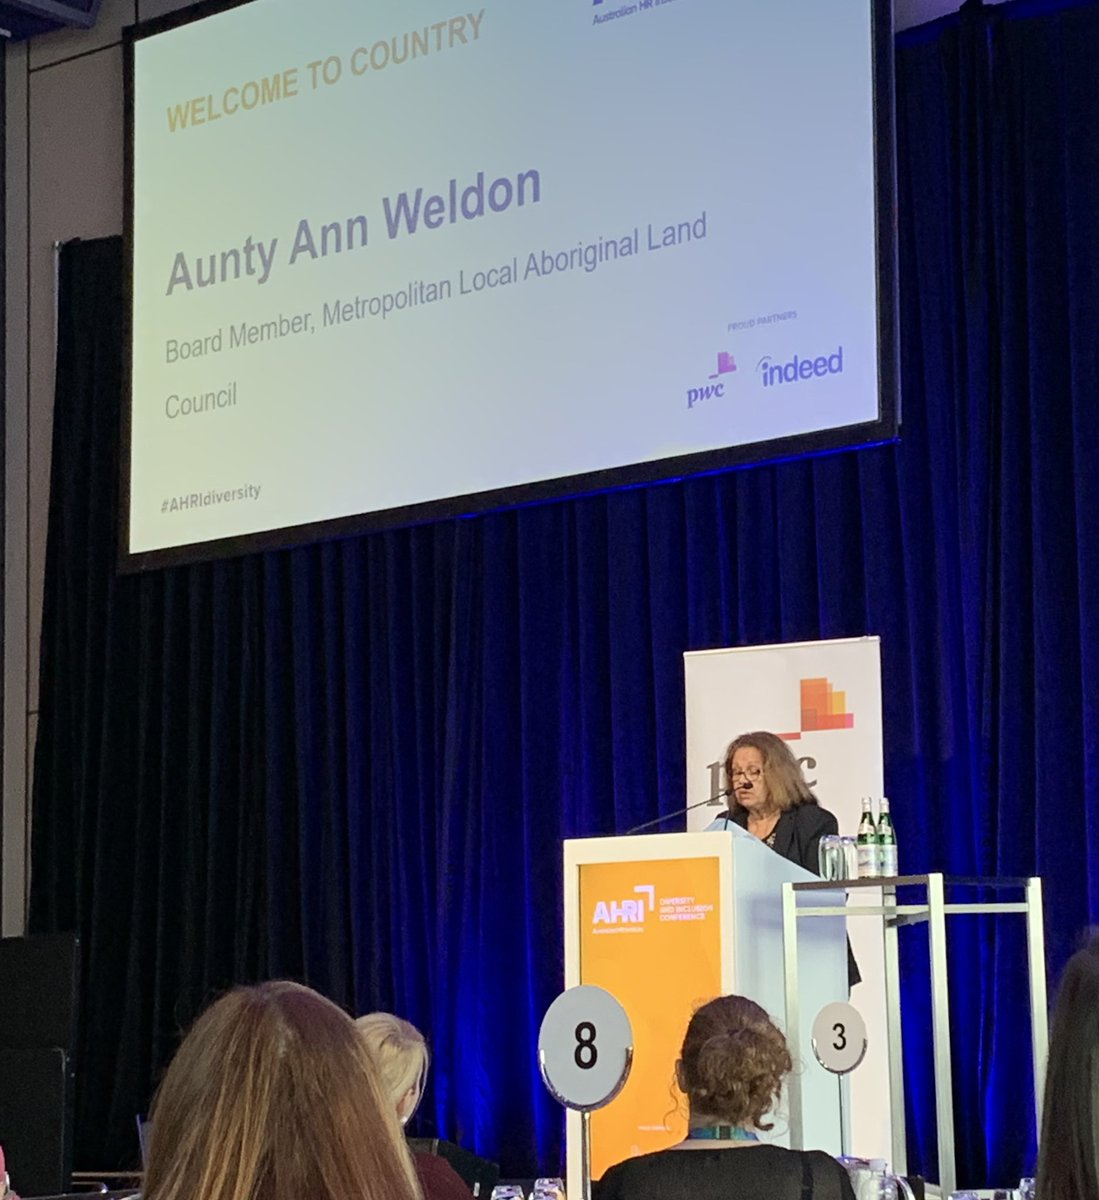 Welcome to country from Aunty Ann Weldon. 'Our culture is one of truth telling and spirituality- I invite you to walk beside us - not in front of us - to be a Champion for Change - Welcome to Gaddigal Country  #AHRIDiversity #Alwayswas #AlwaysWillBe